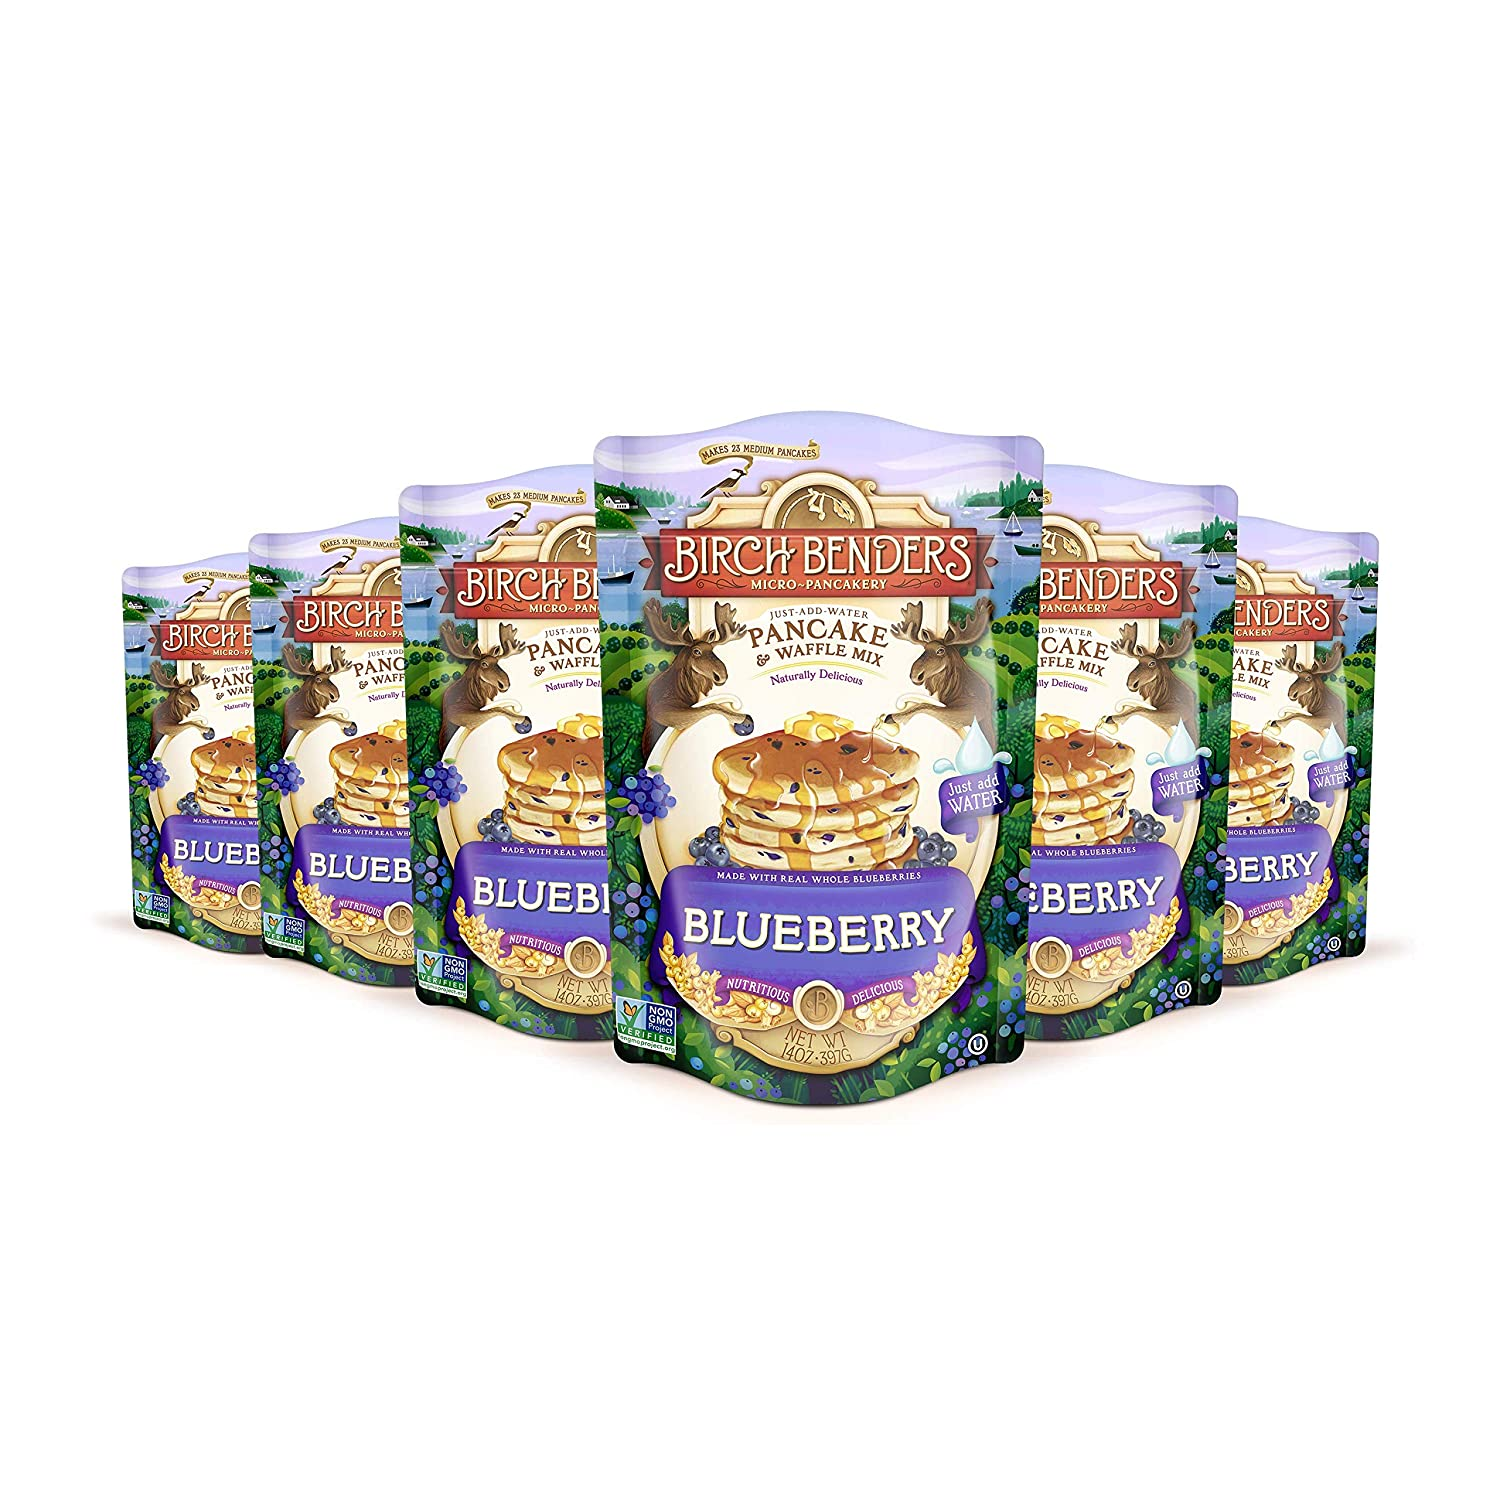 Blueberry Pancake & Waffle Mix By Birch Benders, Made With Real Blueberries, Just Add Water, Non-Gmo, Dairy Free, Just Add Water, Family Size, 6 Pack (14 Oz Each)